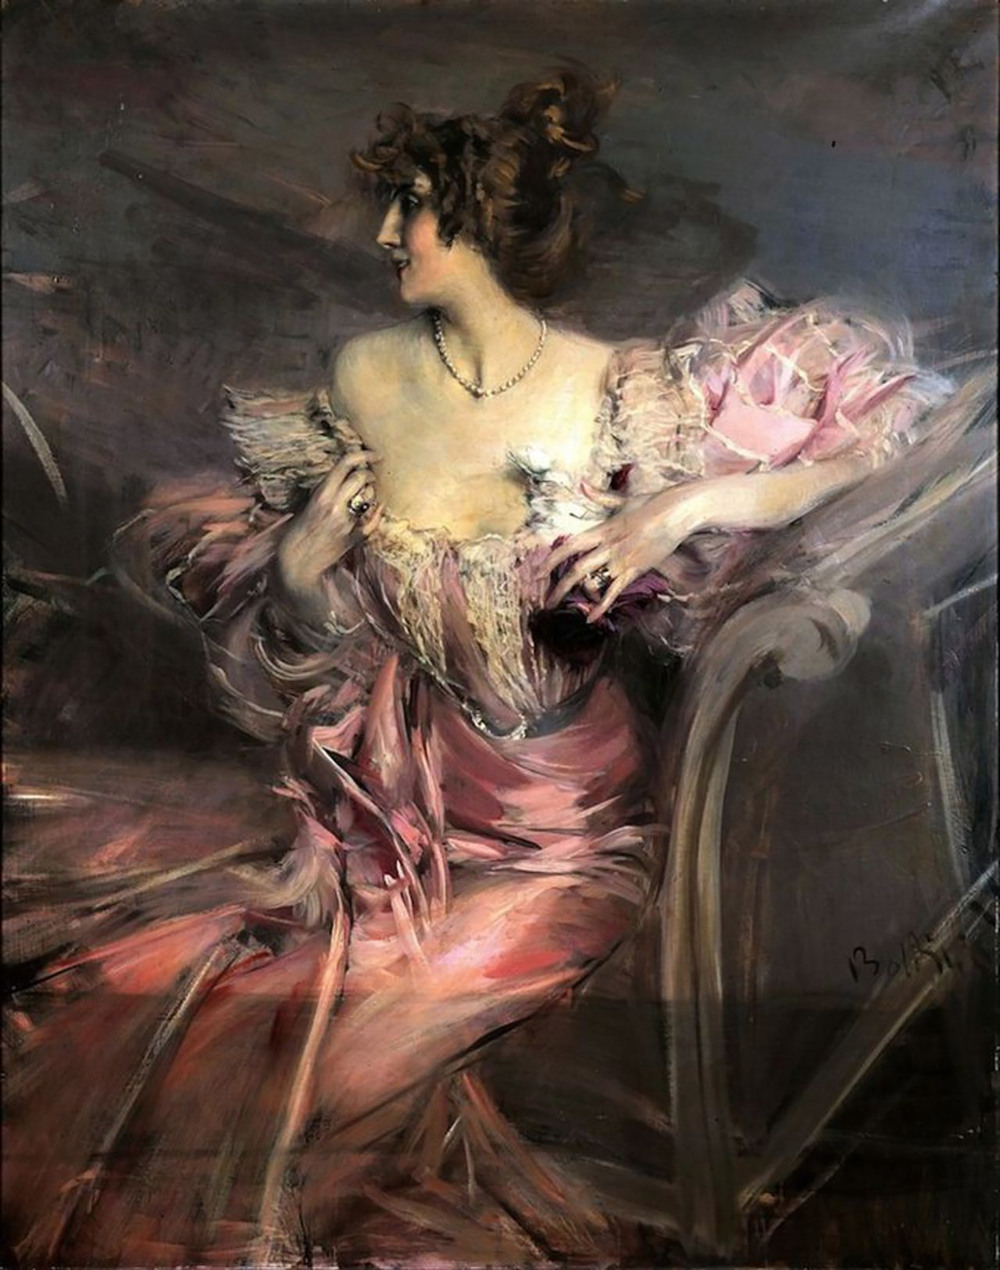 Giovanni Boldini oil on canvas portrait of Marthe de Florian that later fetched 3.4 million at auction (a record price for the 19th century Italian artist).